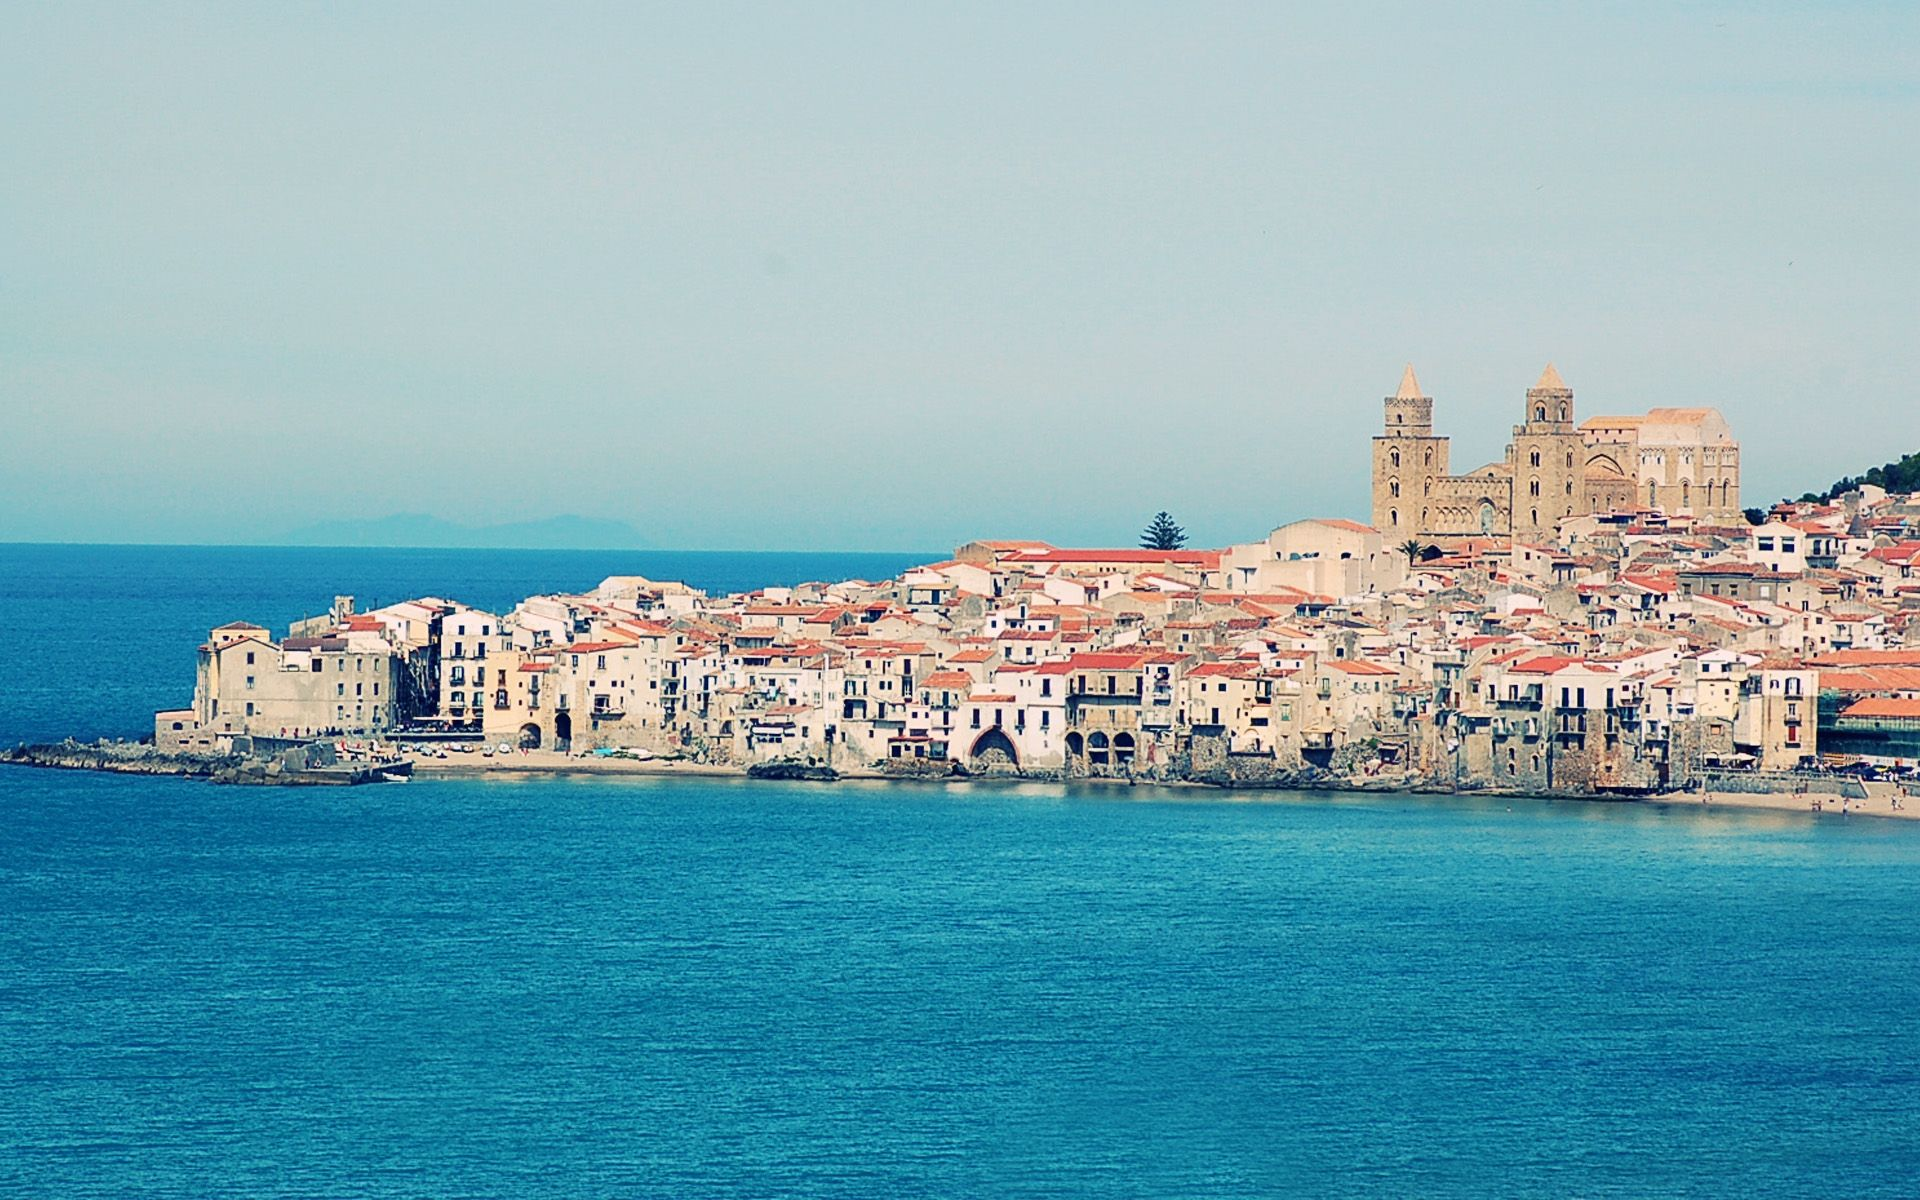 HD Wallpaper Cefalù Sicily Italy for 1920 x 1200